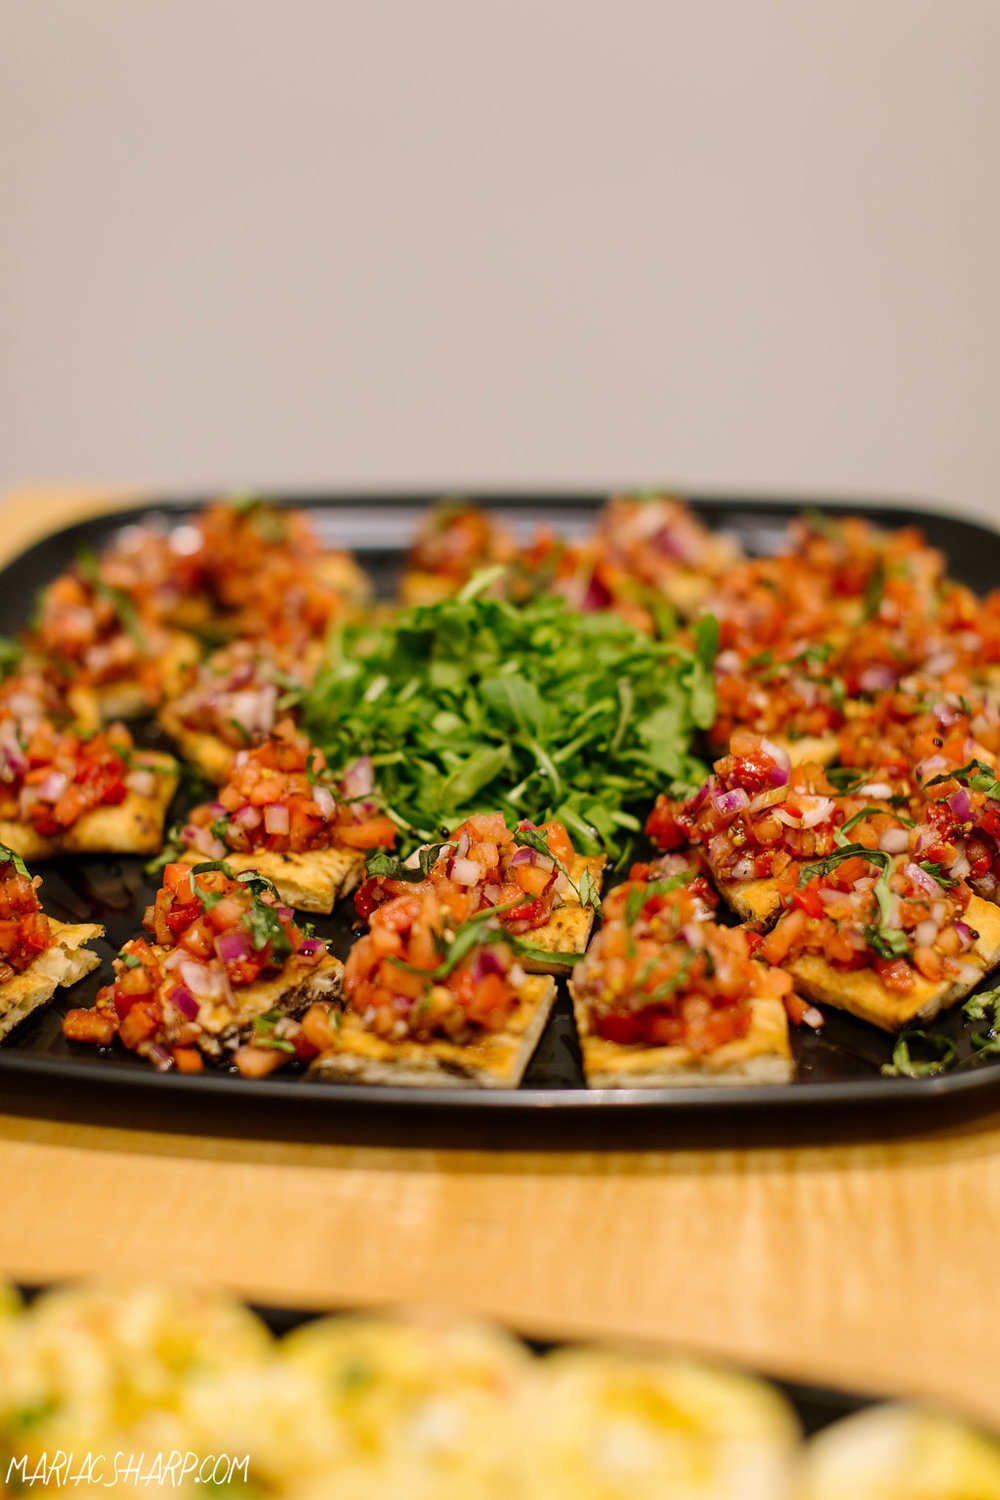 The food was catered by Heck's Express, including this delicious platter of bruschetta. Photo by Maria Sharp Photography